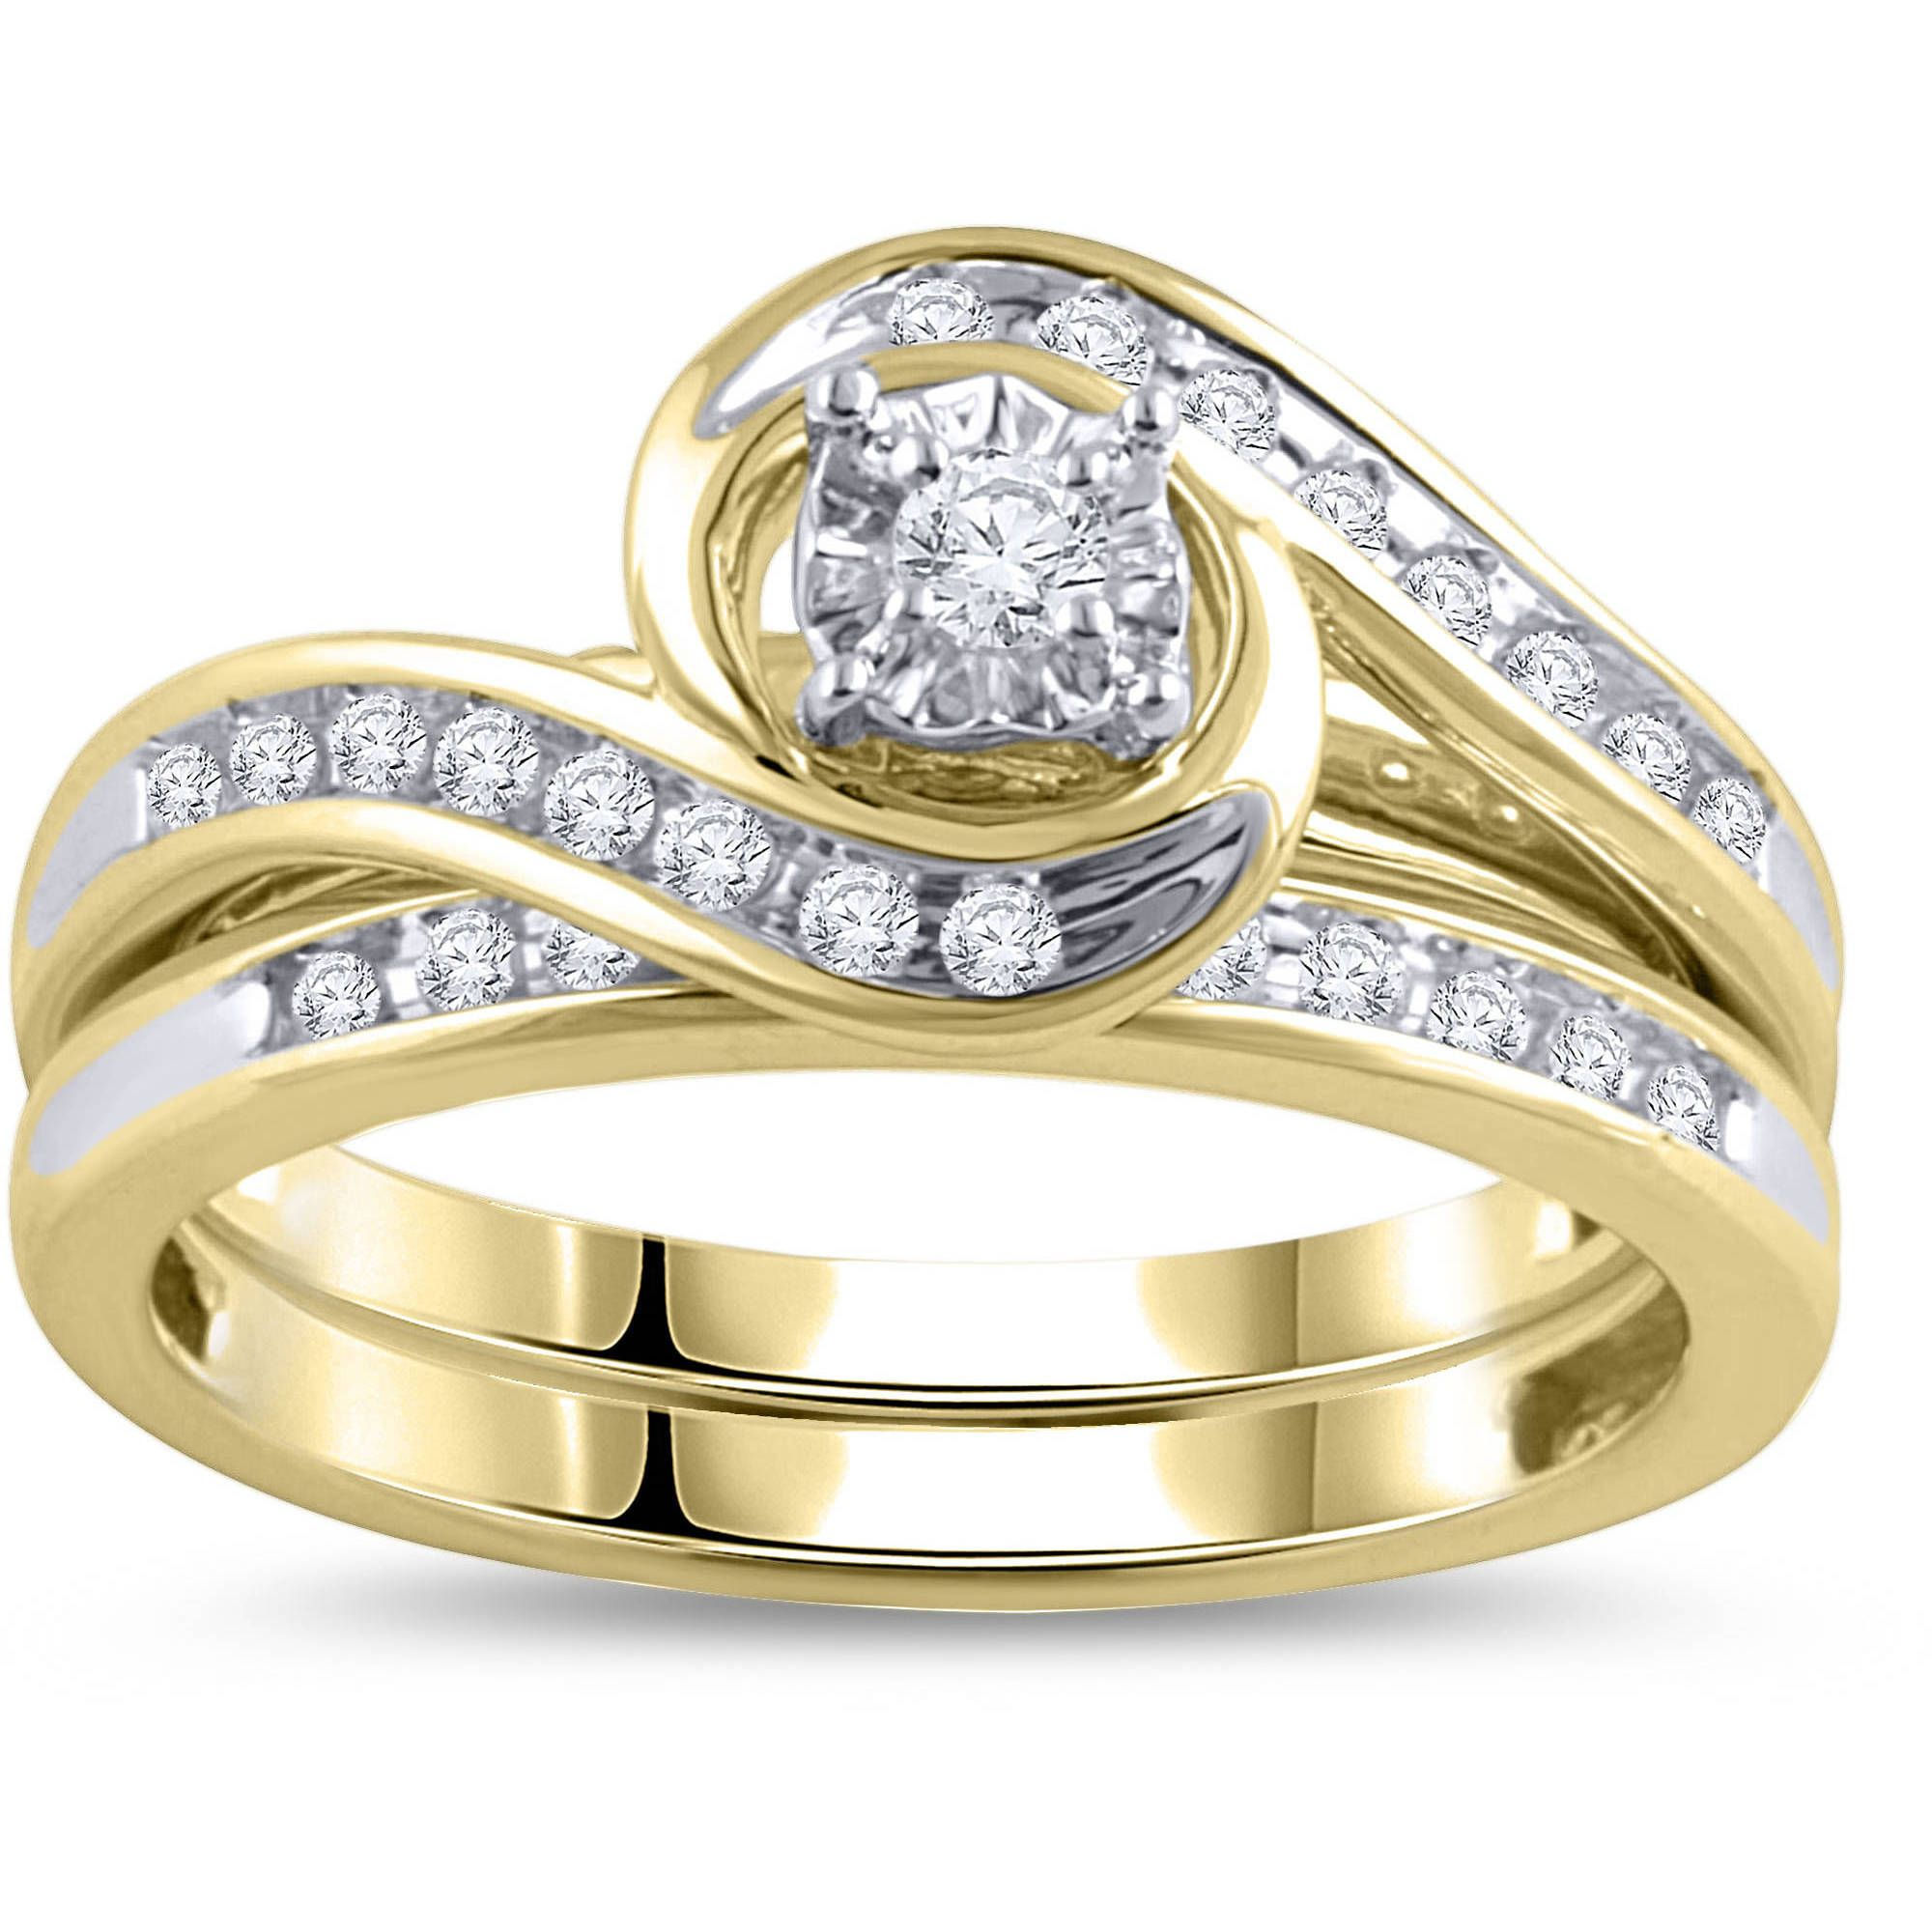 engagement traditional blog glosite websites rings ring couple non modern wedding inspiration